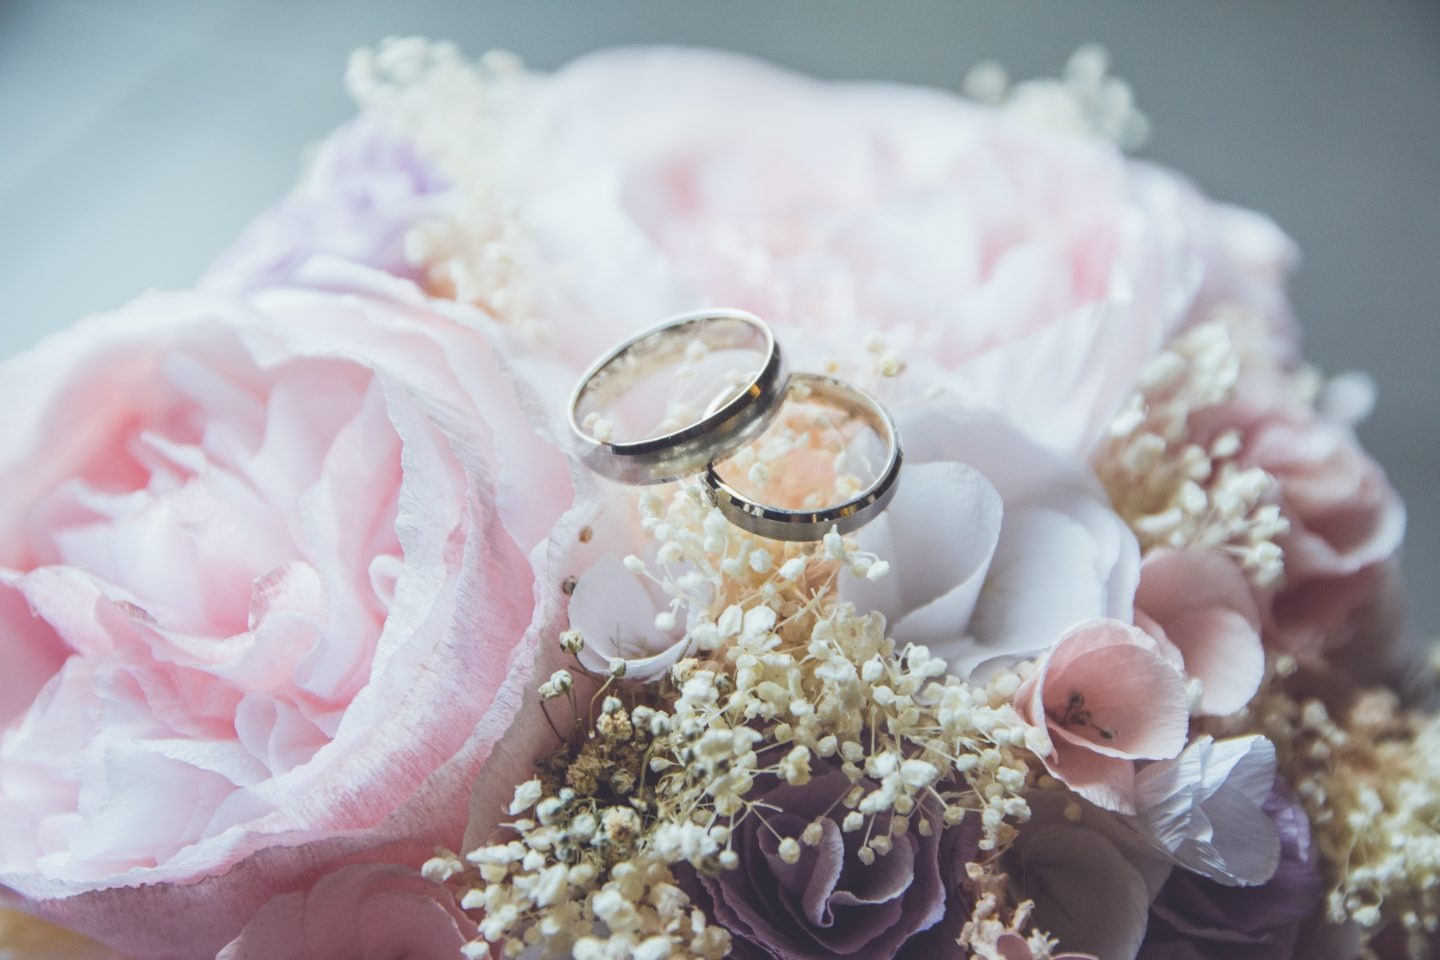 Two wedding rings on some flowers